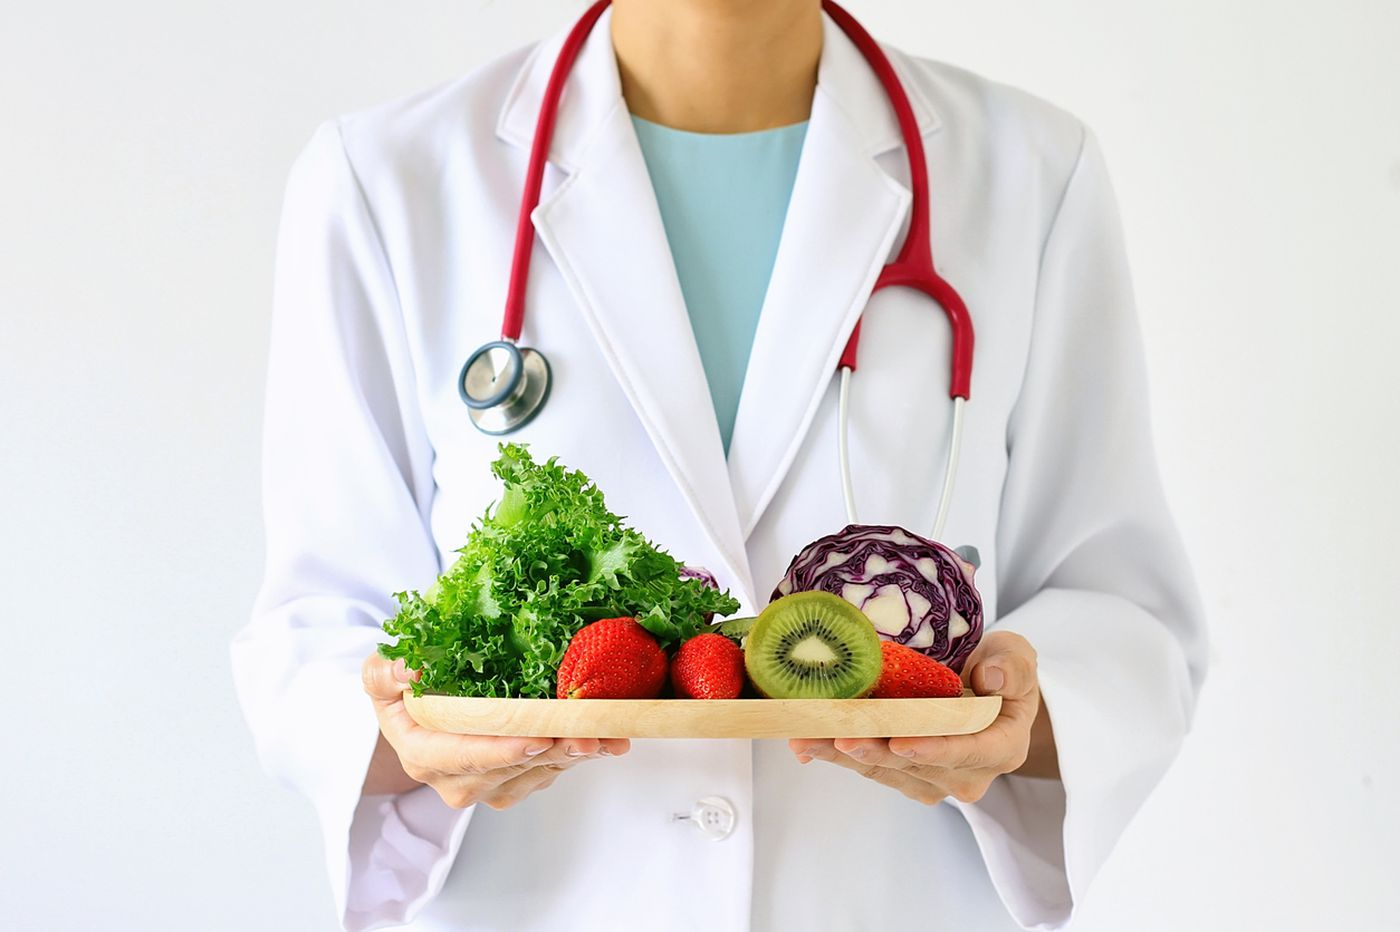 To follow a heart healthy diet, should you chose low fat or low carb?